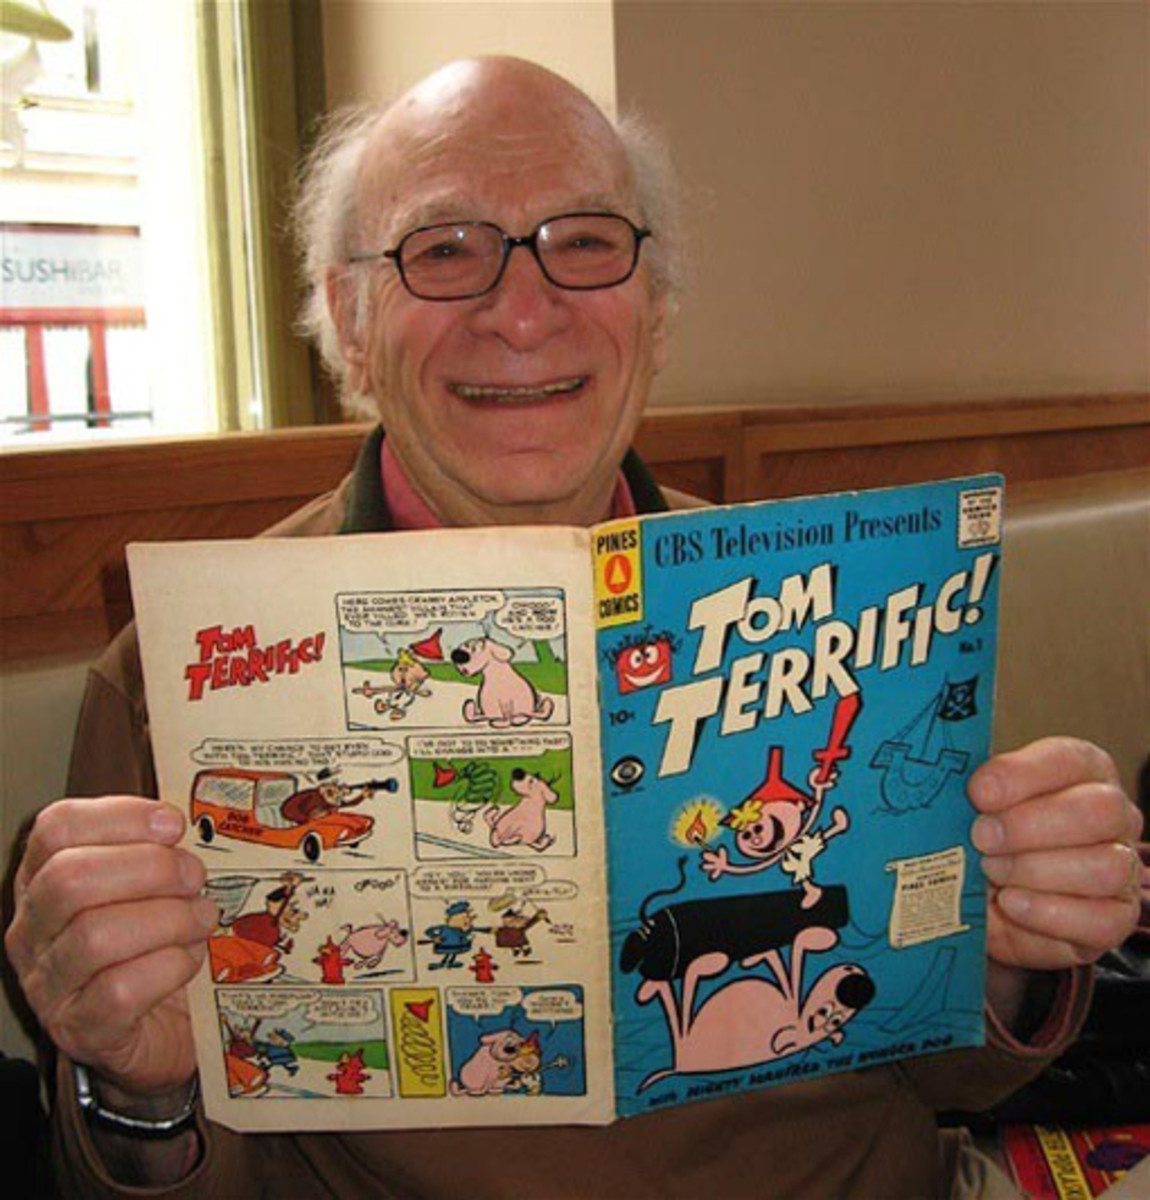 Following Paul Terry's retirement, cartoonist Gene Deitch took TerryToons into the realm of television.